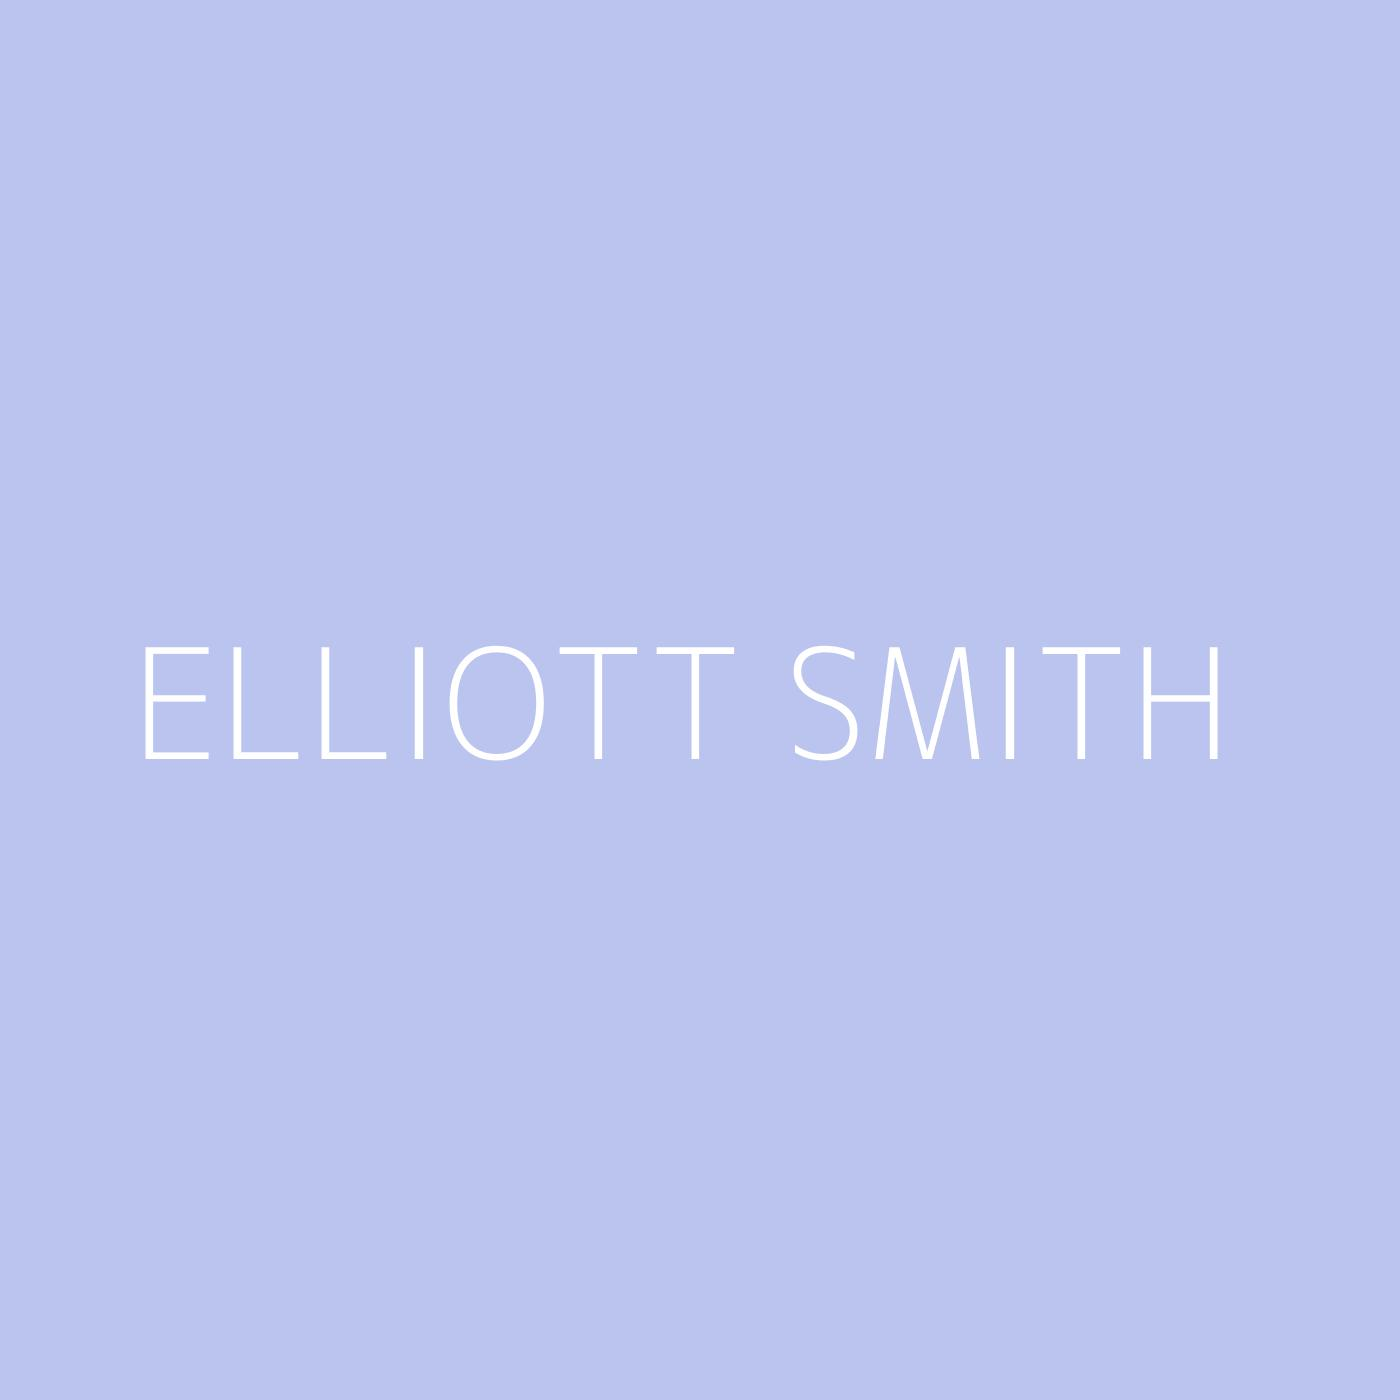 Elliott Smith Playlist Artwork